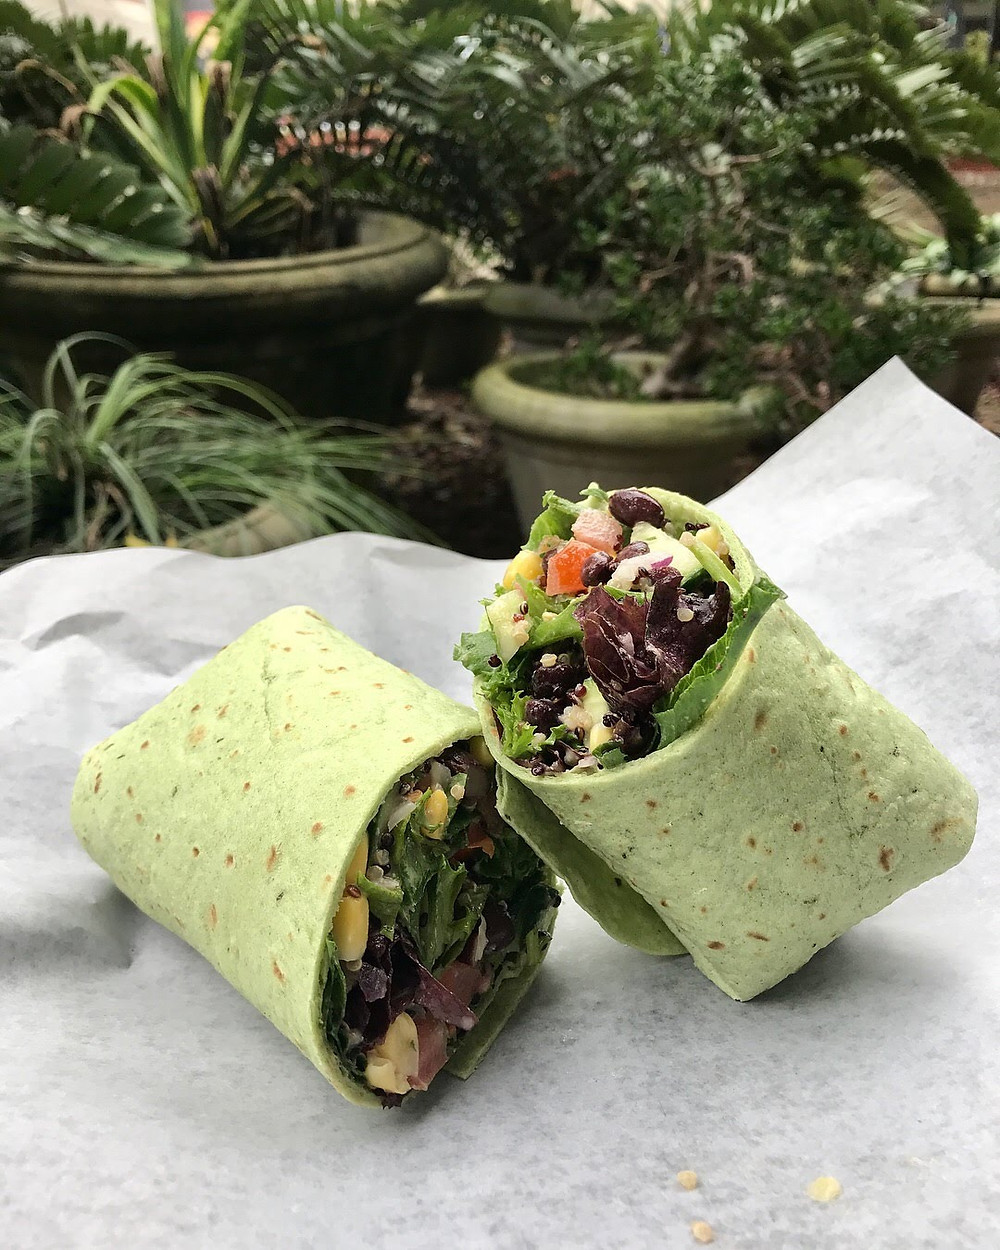 A chopped and wrapped wrap cut in half.